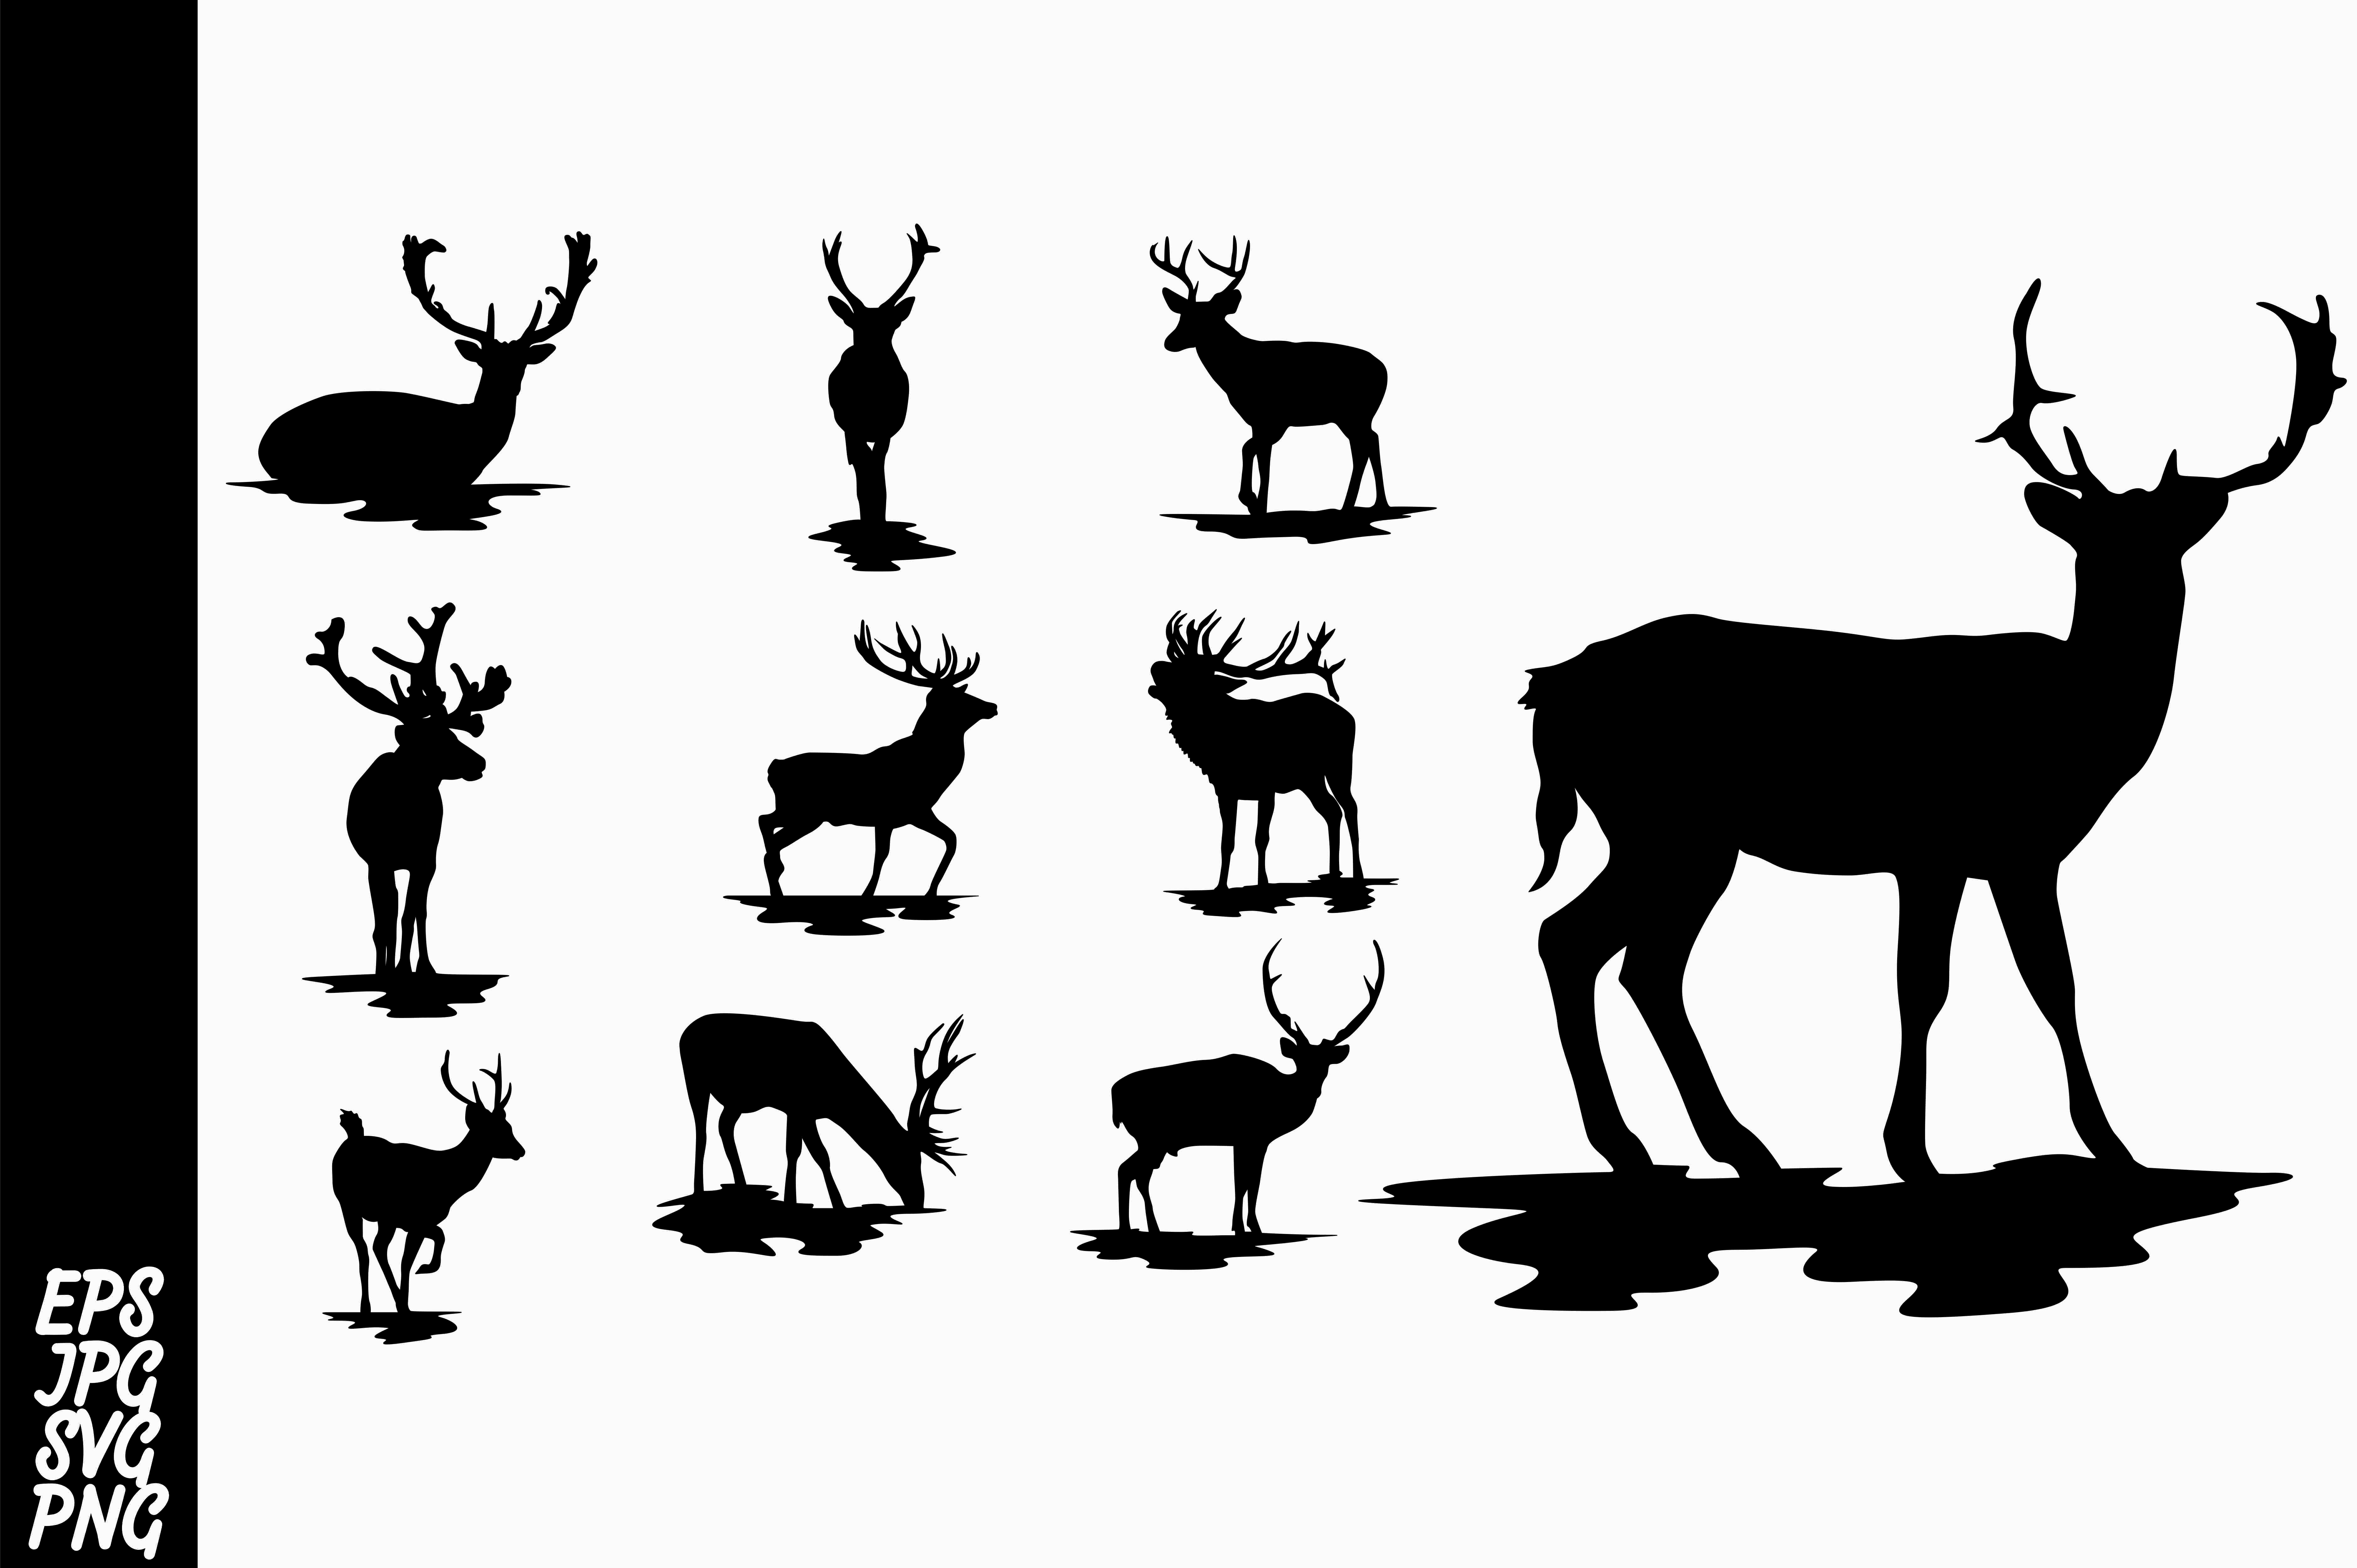 Download Free Deer Silhouette Svg Bundle Graphic By Arief Sapta Adjie Ii for Cricut Explore, Silhouette and other cutting machines.